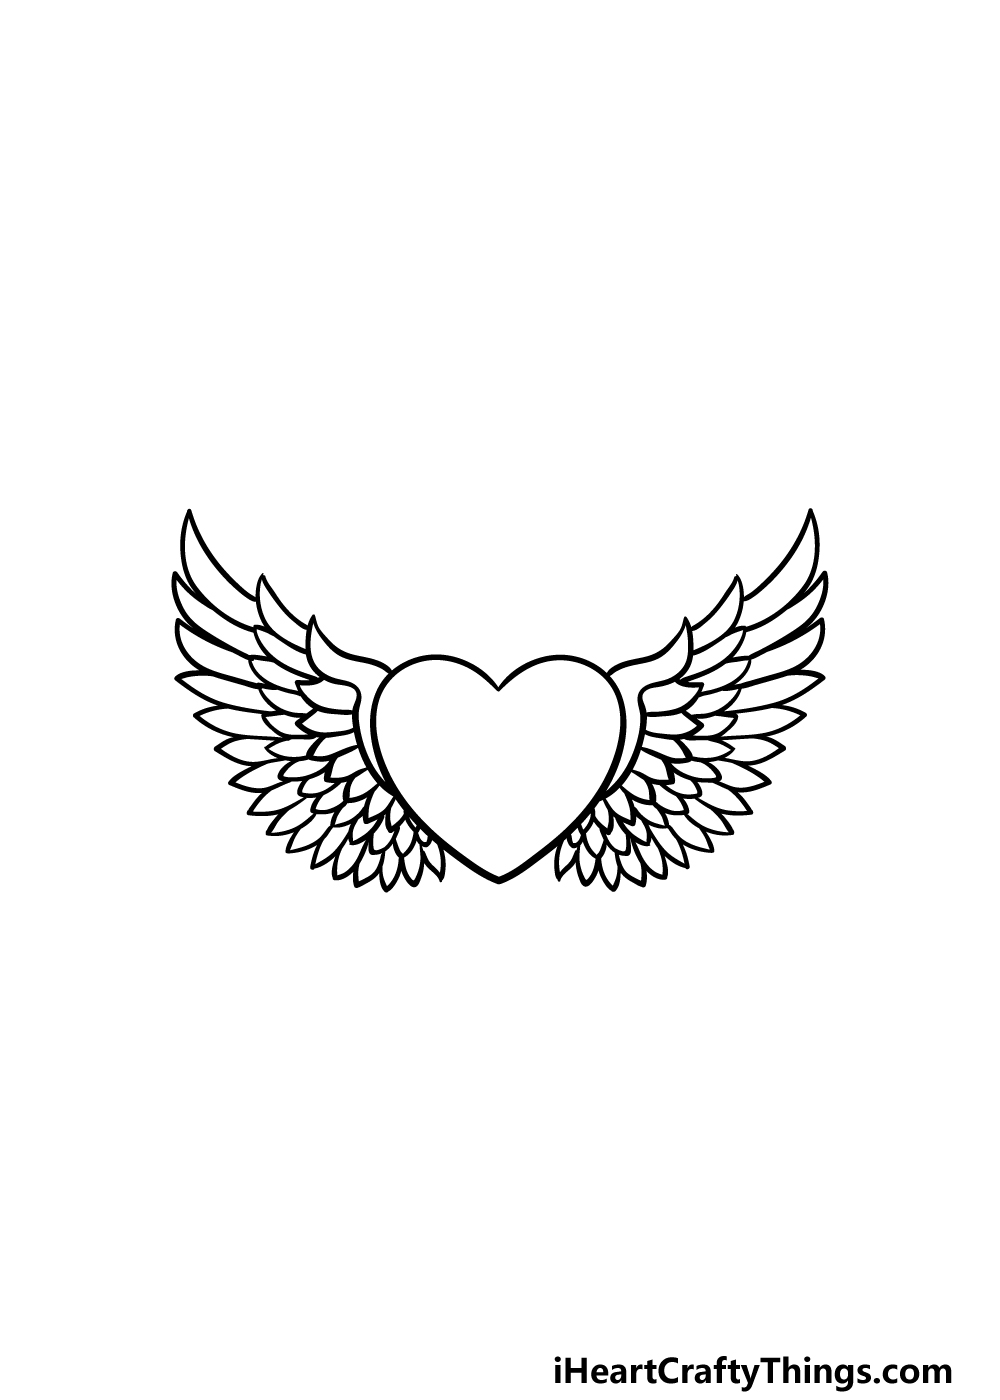 drawing a heart with wings step 4